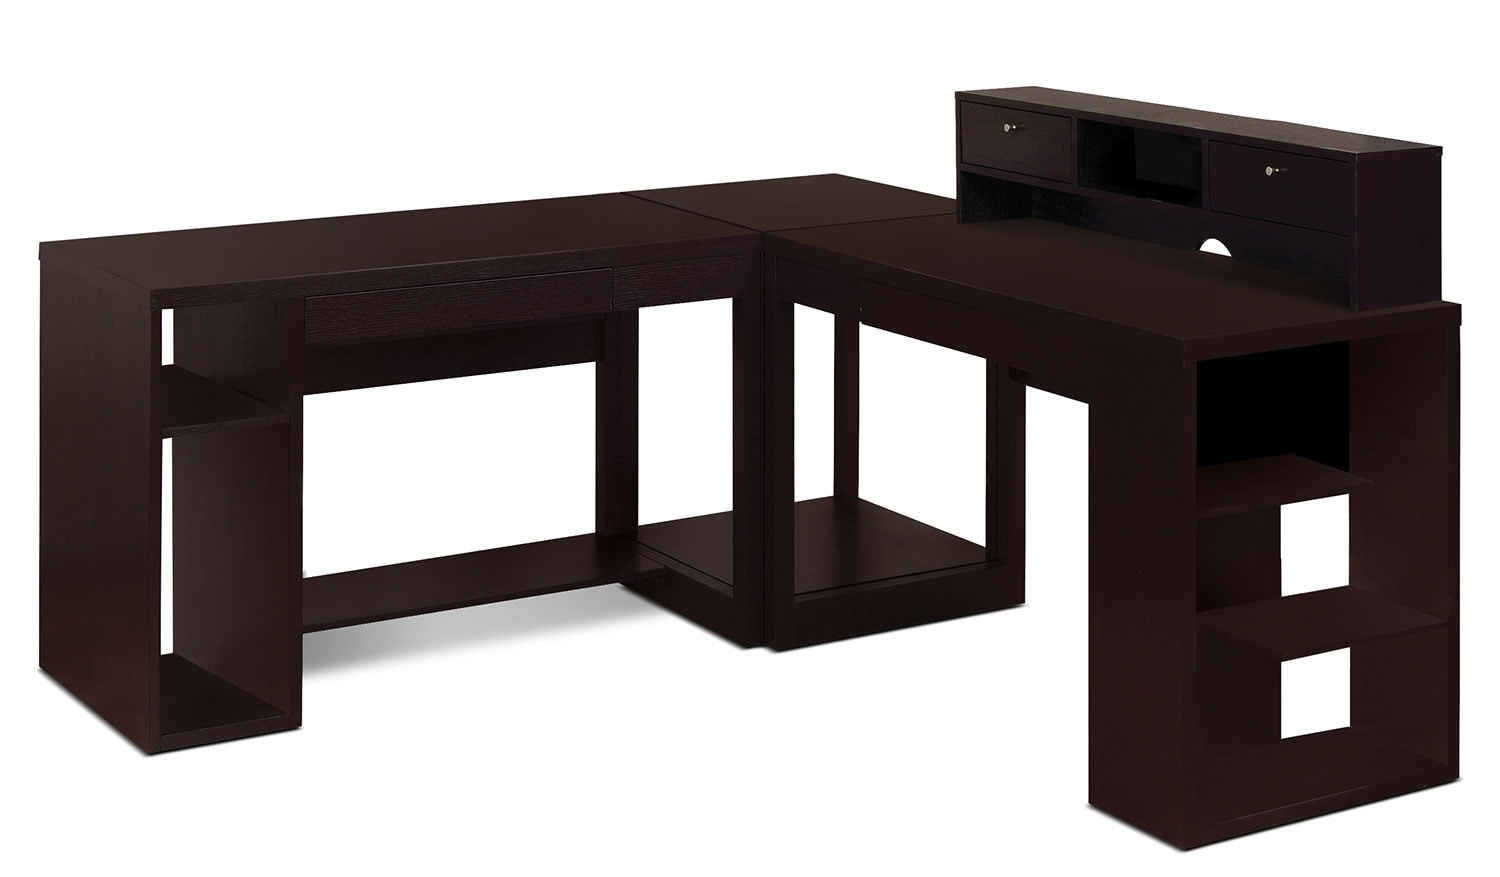 Peyton 4-Piece Desk Package